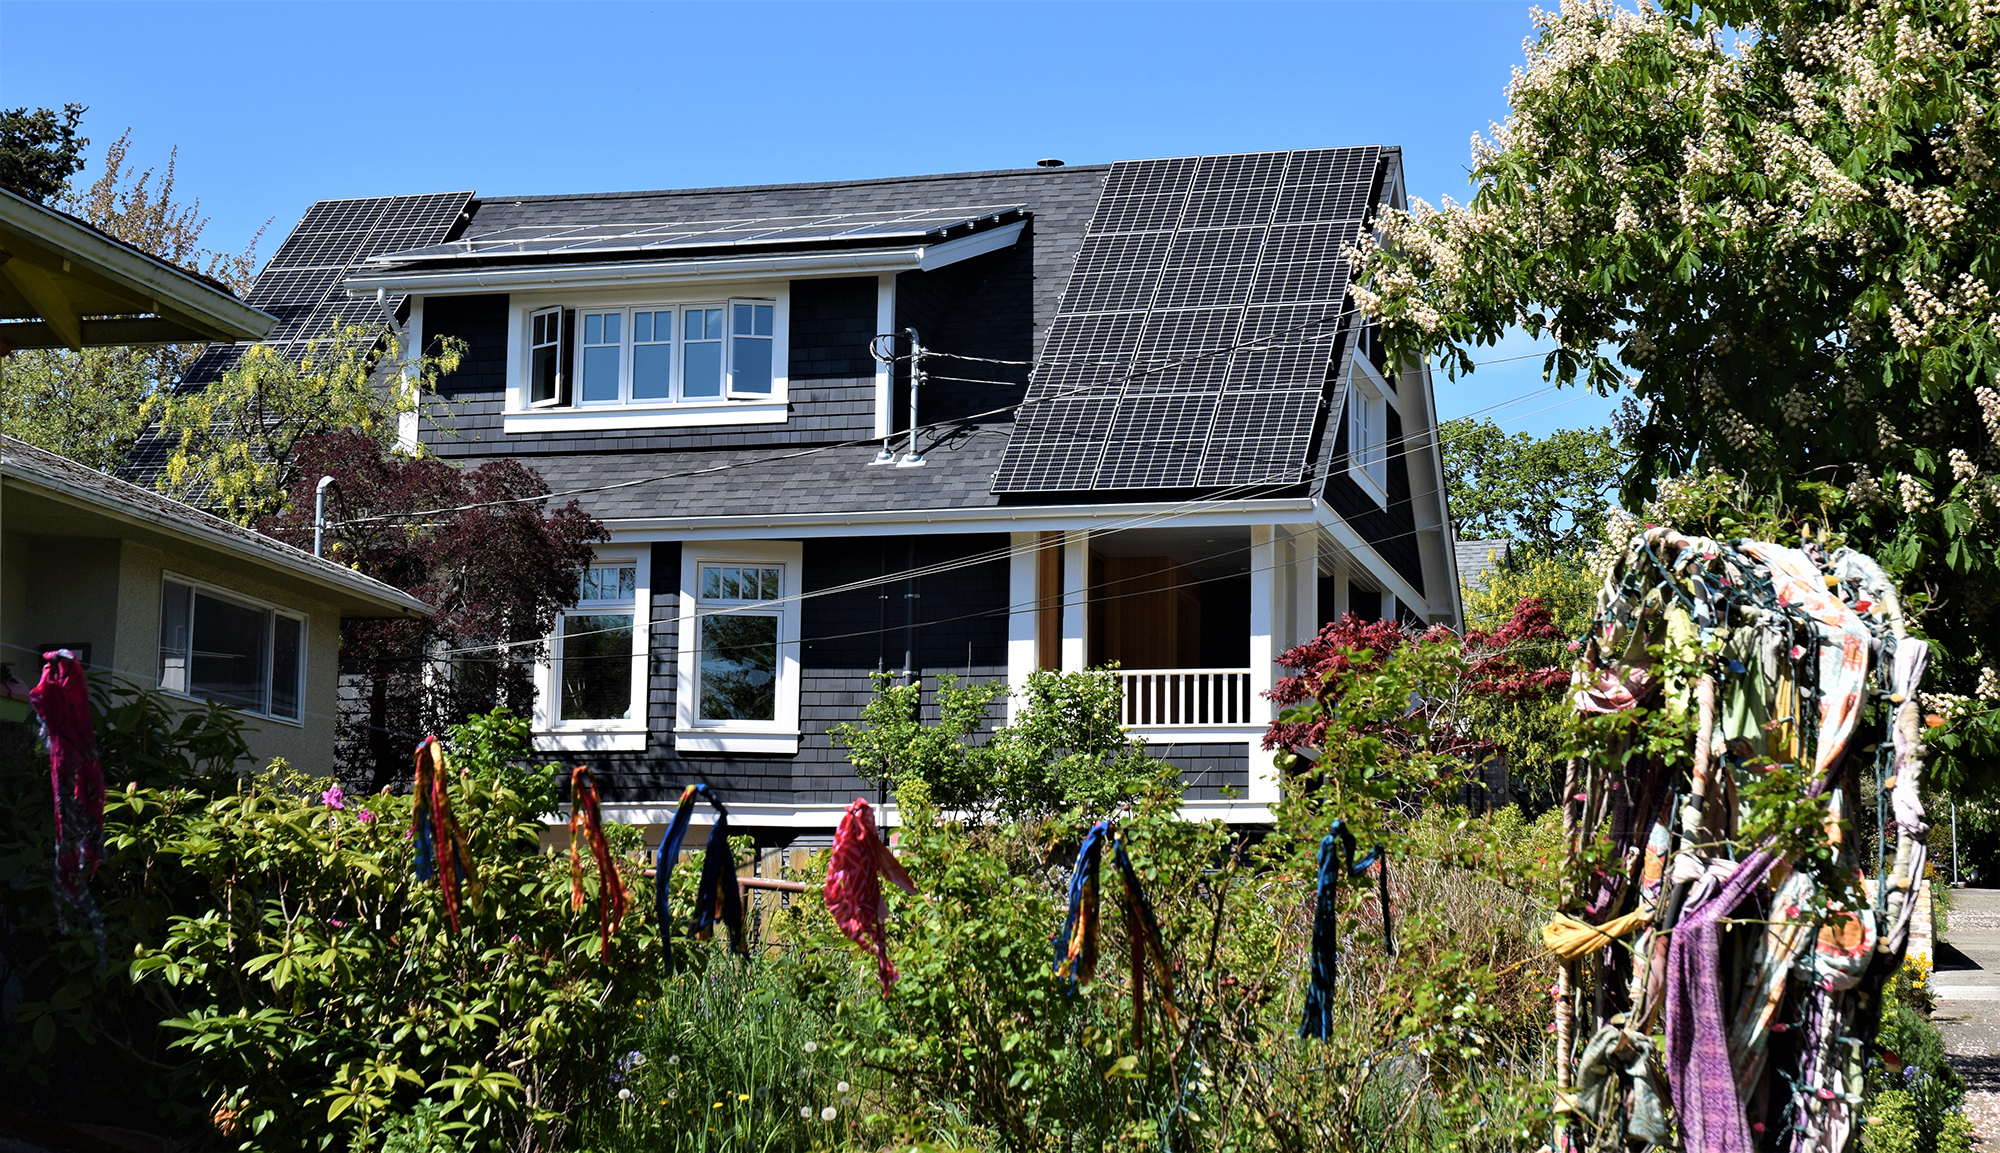 The exterior of the house with solar panels on the roof.